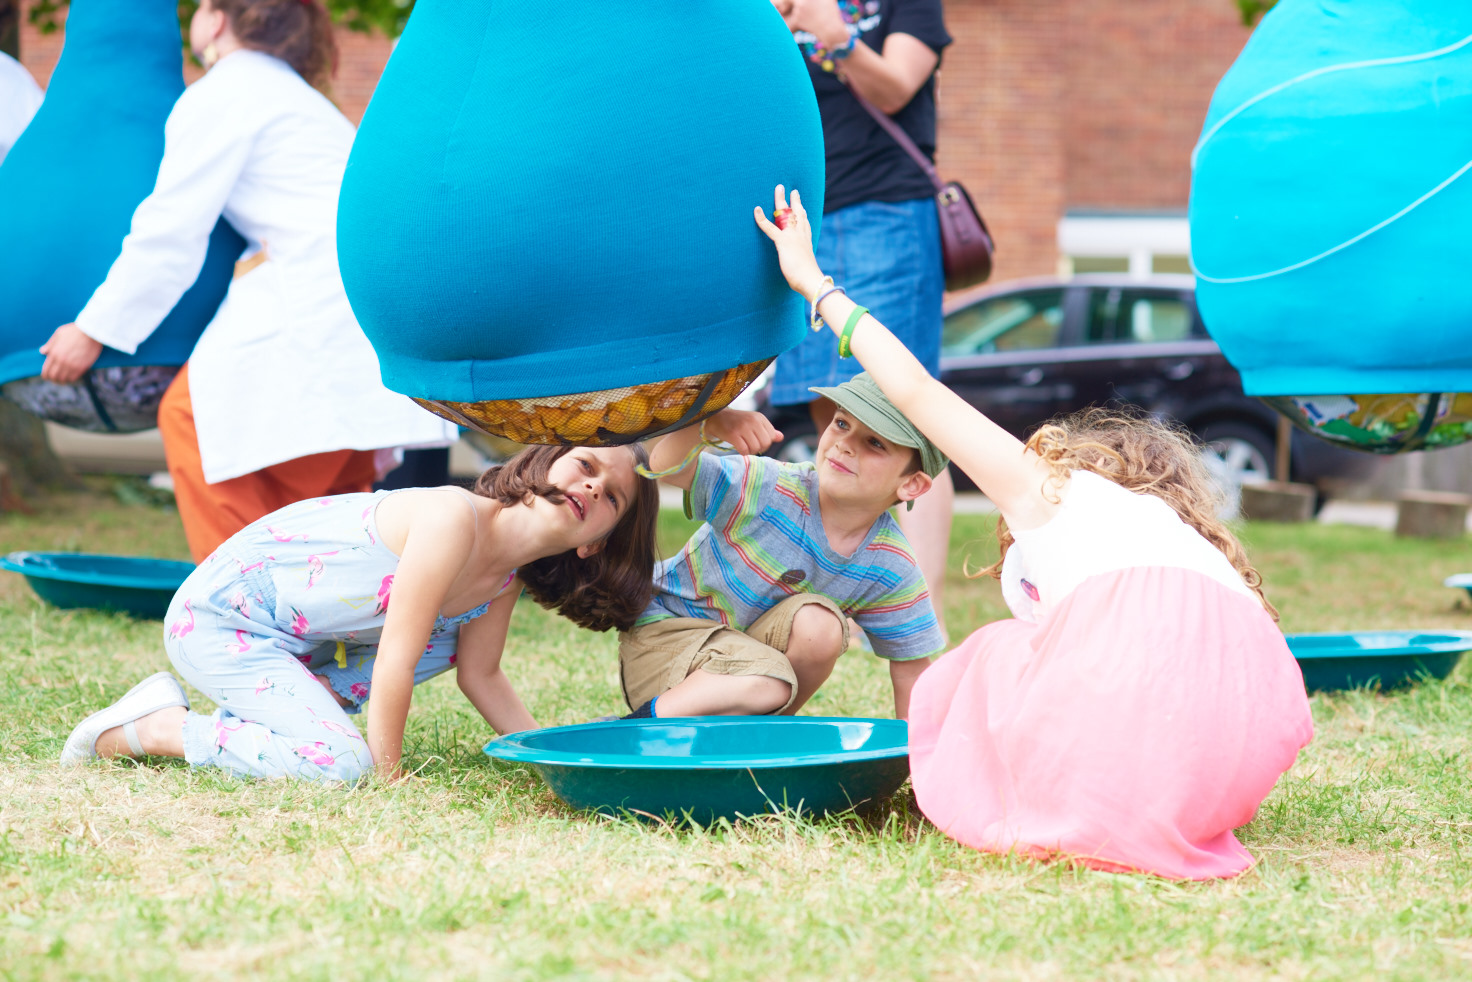 A photo showing an art installation on a green in front of a row of houses. The installation is large blue fabric tubes strung up about 2.5 metres in the air, with sections hanging down into large lumpy bulbs just off the ground. Three children are crouched on the ground looking up into the bottom of one of the bulbs, which has netting at the bottom showing that it is full of jumbled up fabrics and/or clothes. Underneath is a large blue enamel dish.